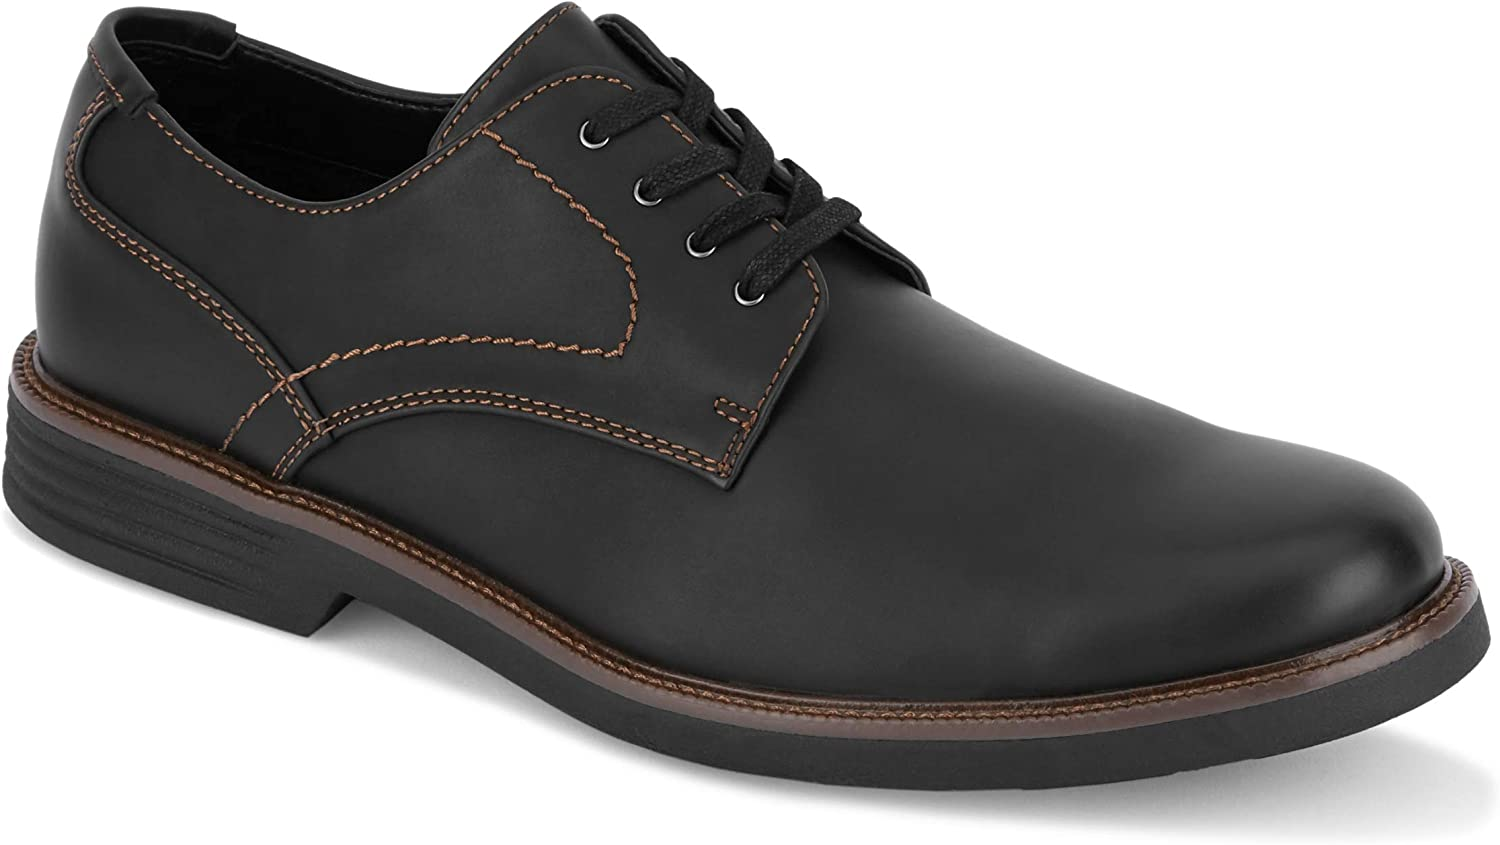 Dockers Mens Lamont Dress Casual Oxford Shoe